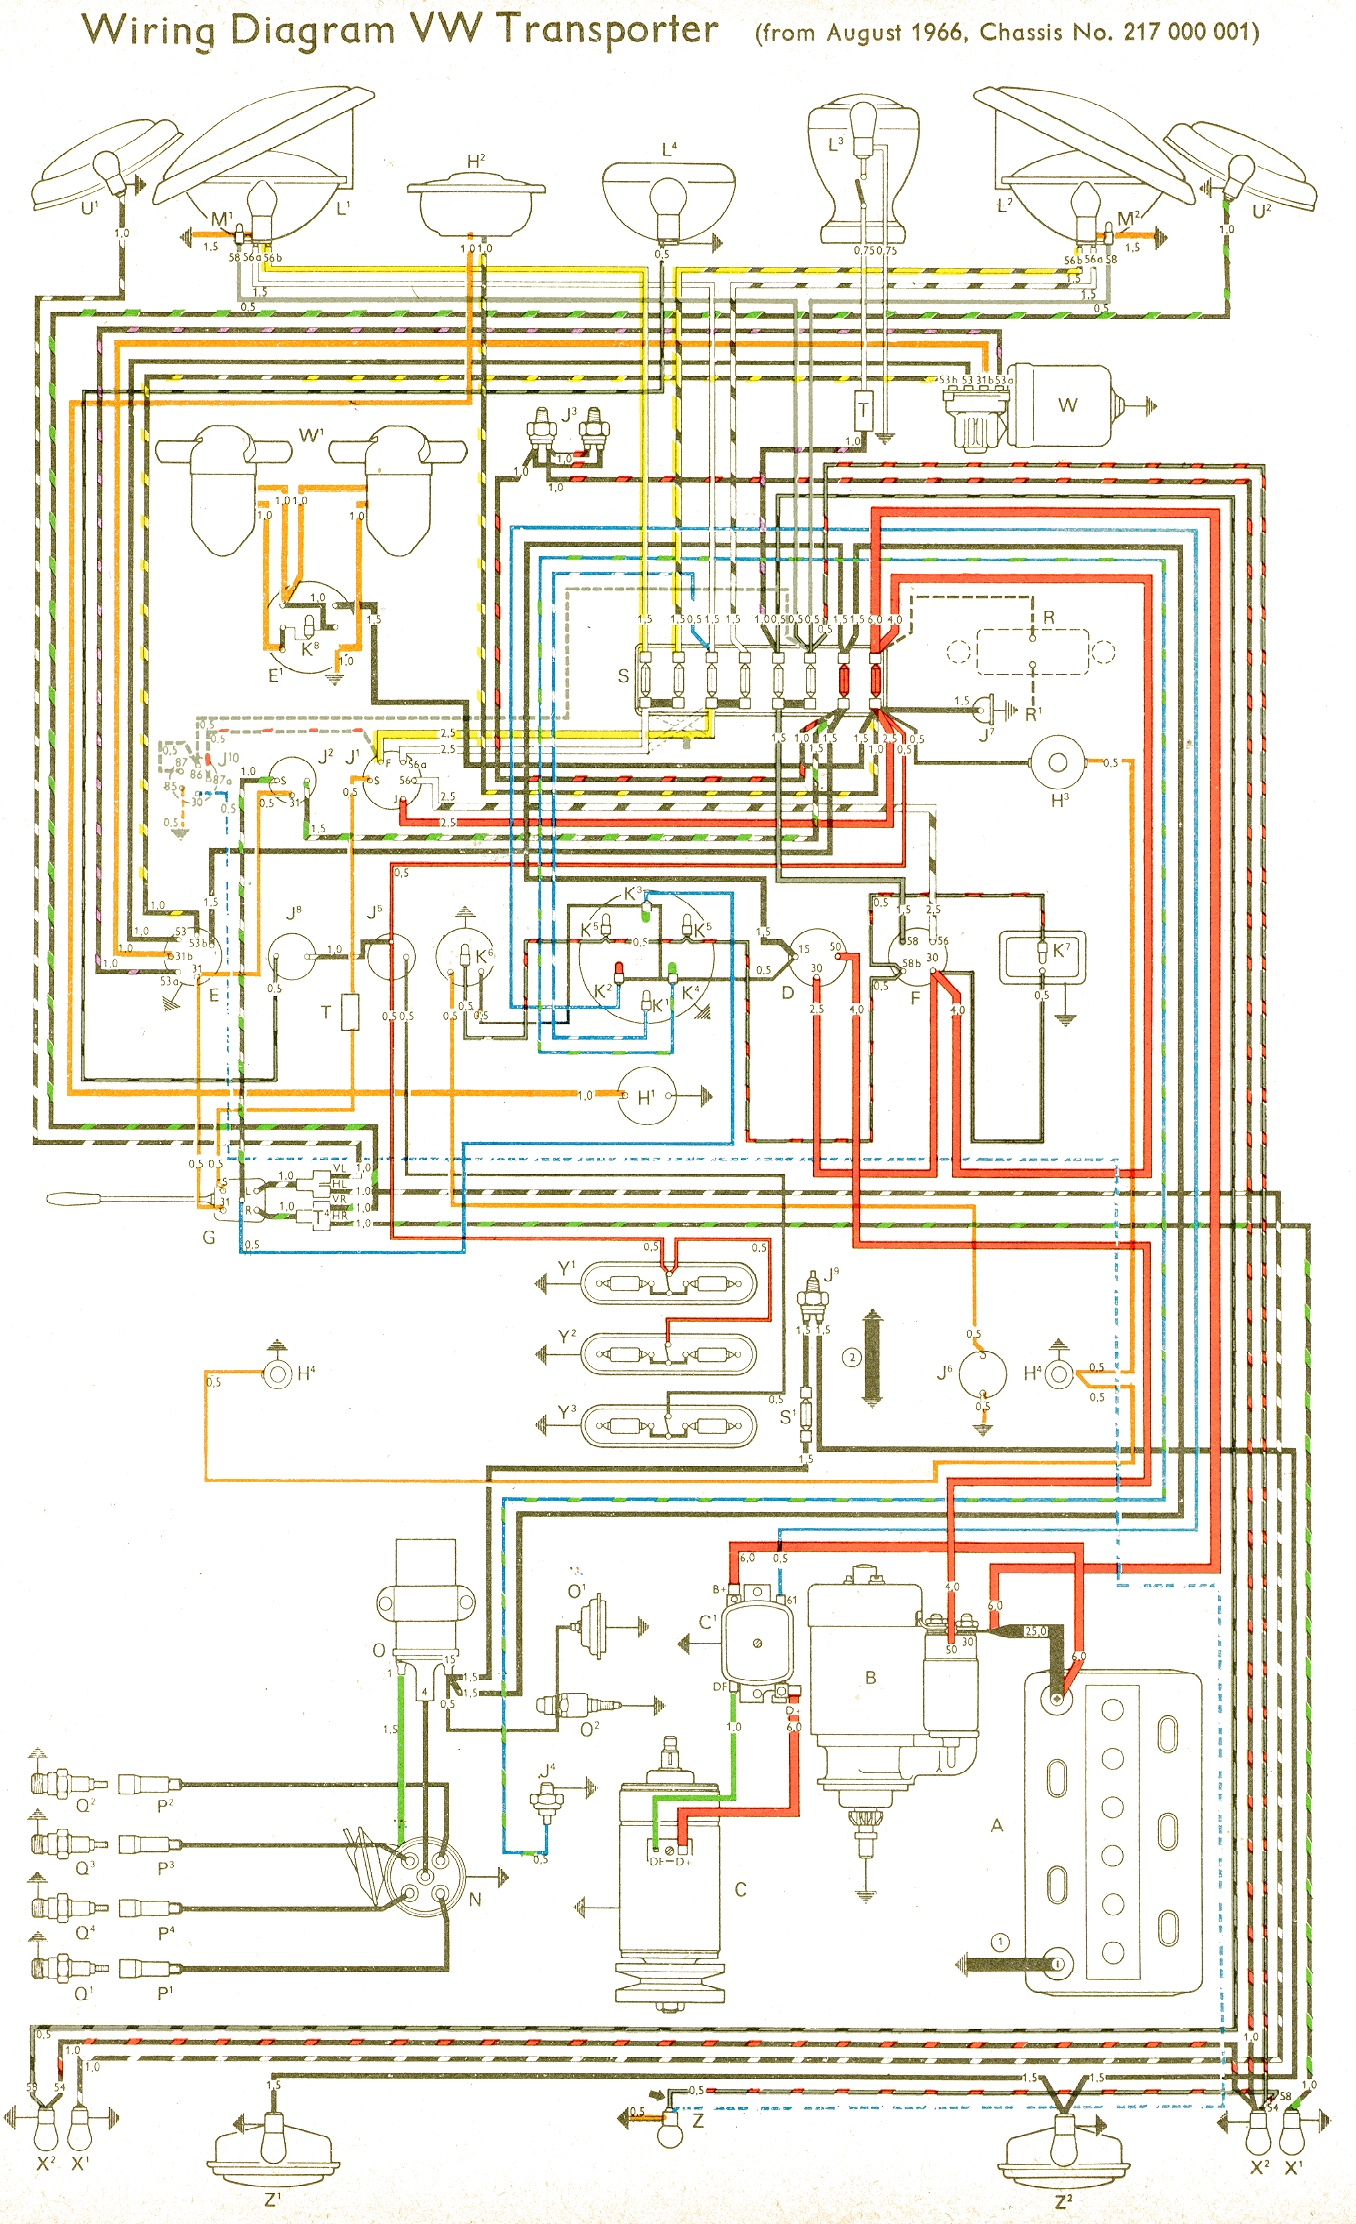 Wiring Diagram 2011 International Buses Will Be A 4700 Electric Suzuki Vitara Fuse Box Auto Electrical Rh Psu Edu Co Fr Sanjaydutt Me Ihc Truck Diagrams Tractor